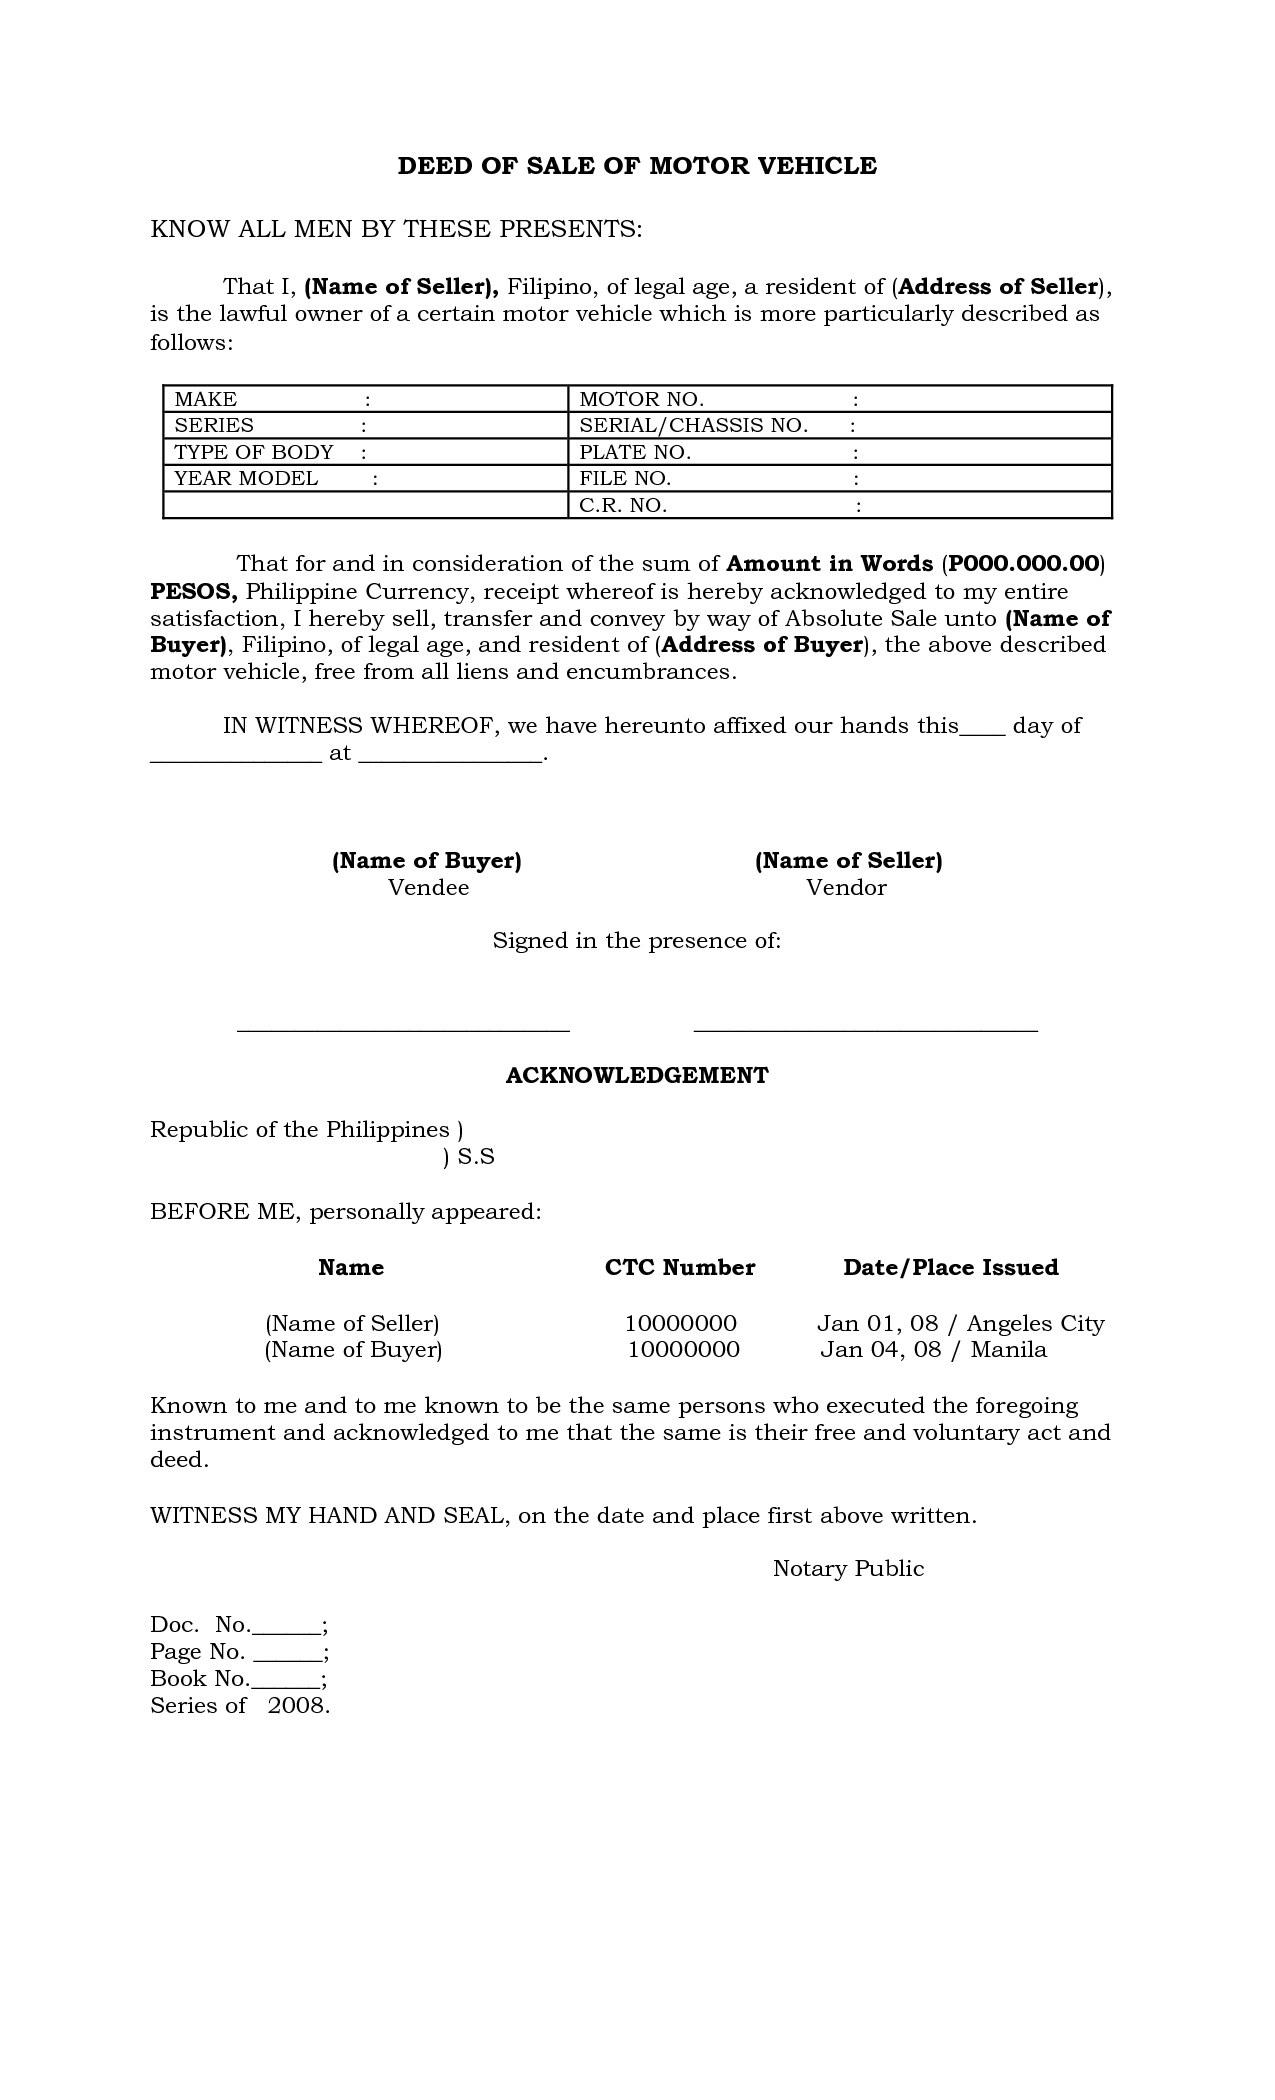 philippines deed of sale of motor vehicle by batotoyako sale deed for car